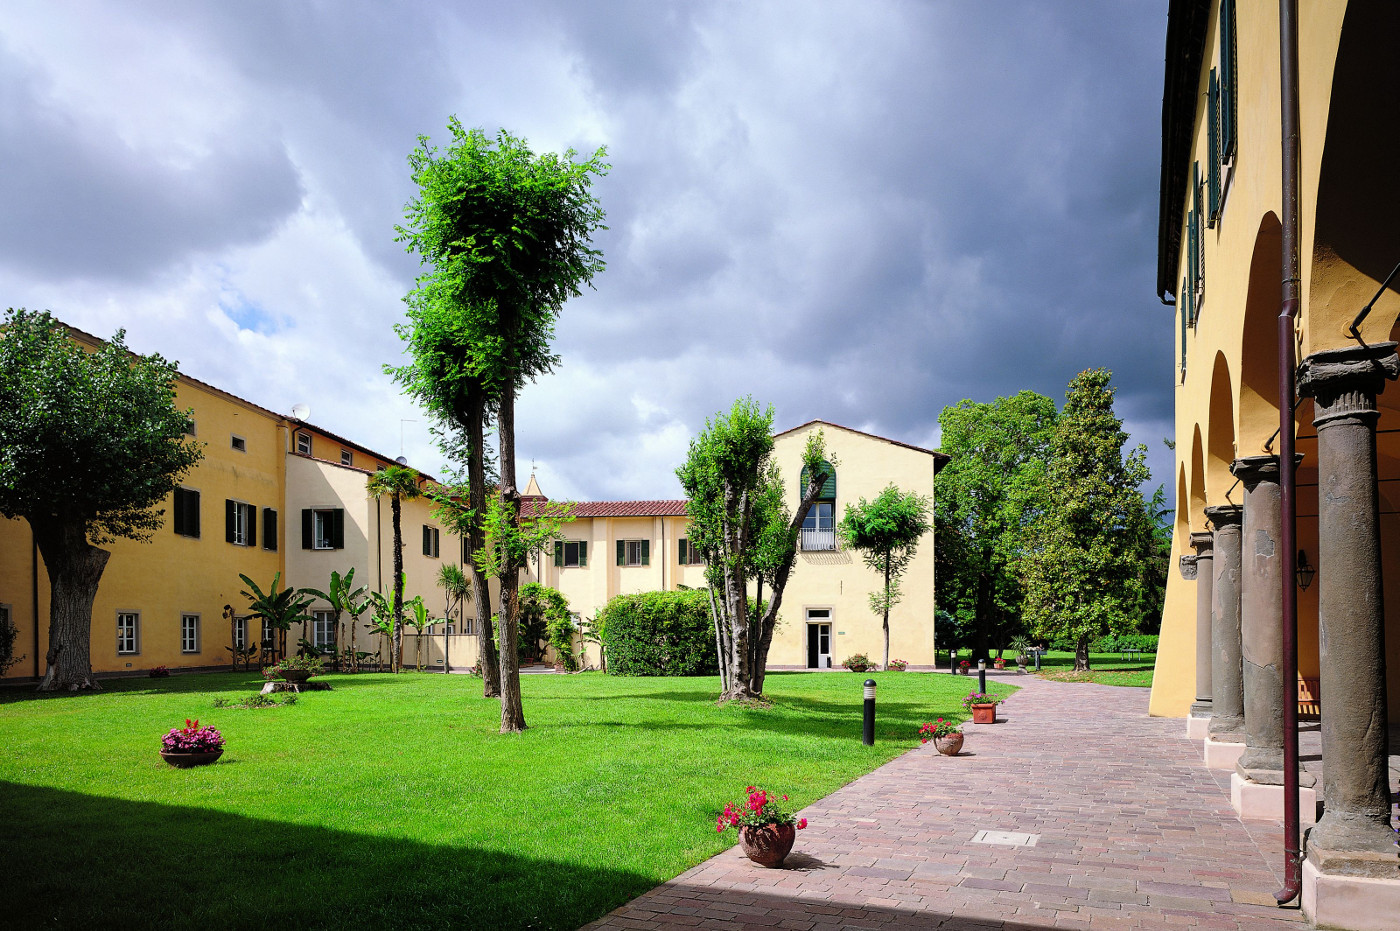 SANT'ANNA SCHOOL OF ADVANCED STUDIES (Pisa) - A public university institute with special autonomy working in the field of applied sciences: Economics and Management, Law, Political Sciences, Agricultural Sciences and Plant Biotechnology, Medicine, and Industrial and Information Engineering.